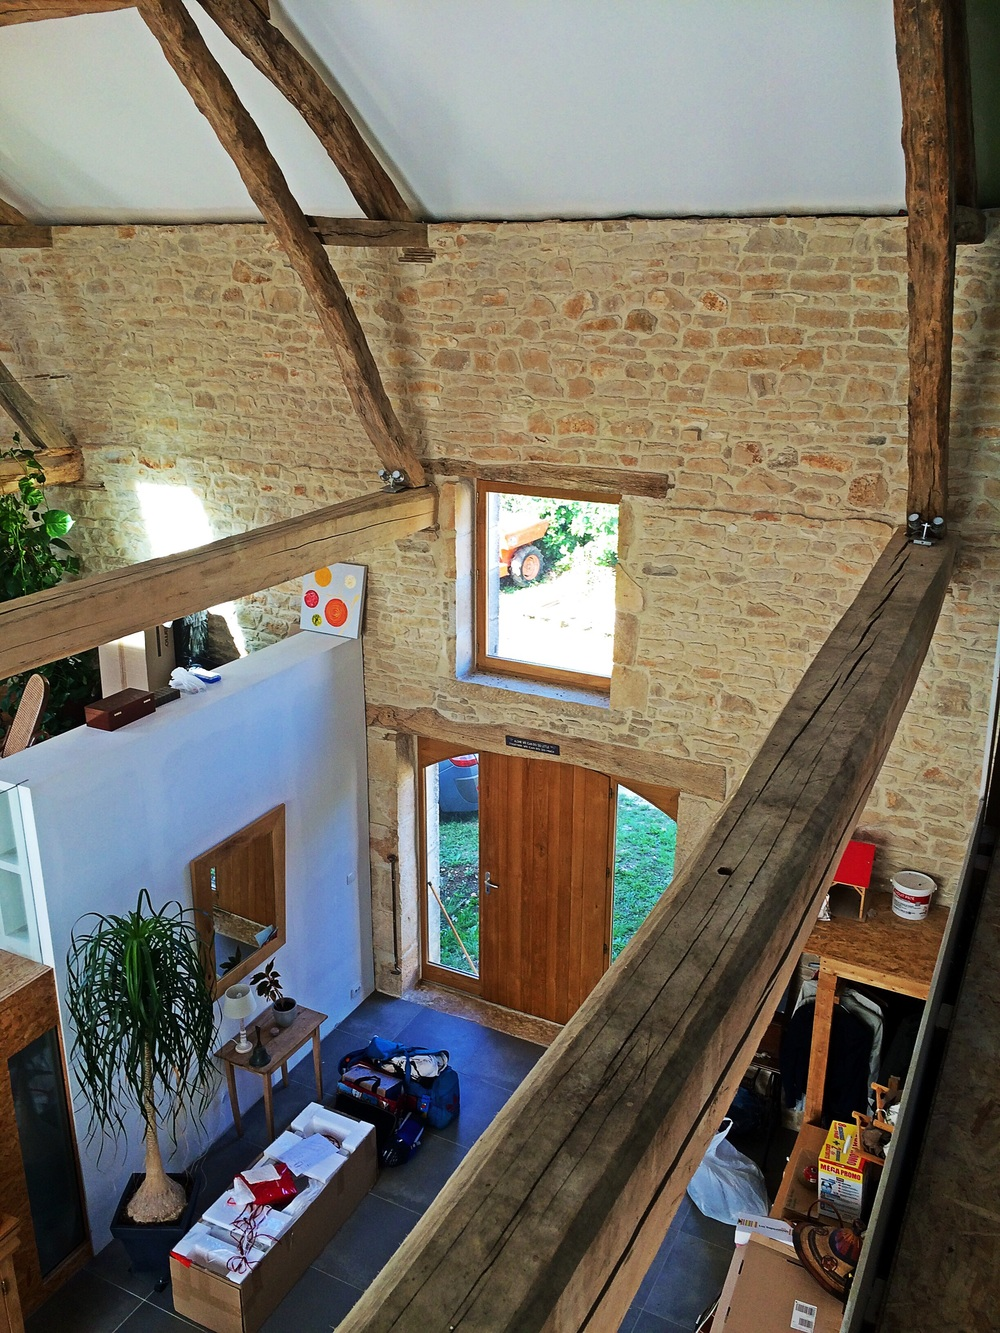 The existing roof timbers and stone walling are offset by contemporary insertions